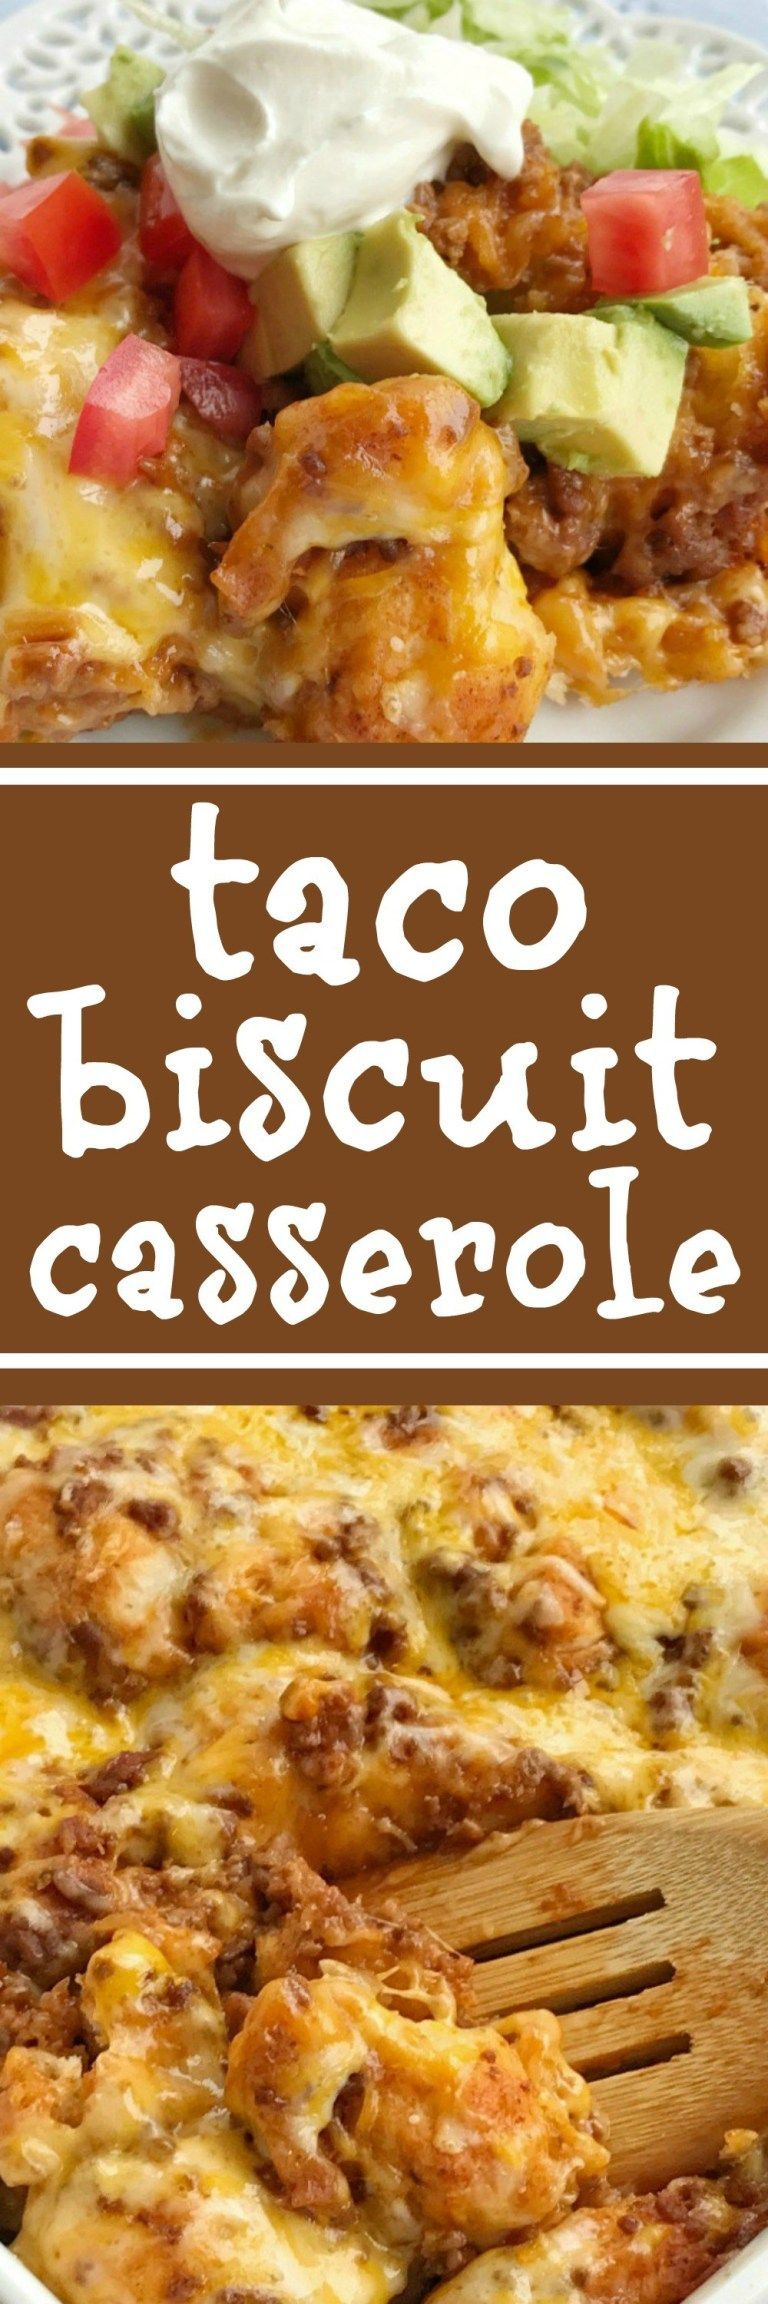 biscuit casserole is an easy & simple one pot meal.Puffed up refrigerated biscuits smothered in a beefy taco mixture and topped with melted cheese. Customize with your favorite taco toppings and you have a delicious dinner recipe that the entire family will love | Taco biscuit casserole is an easy & simple on...